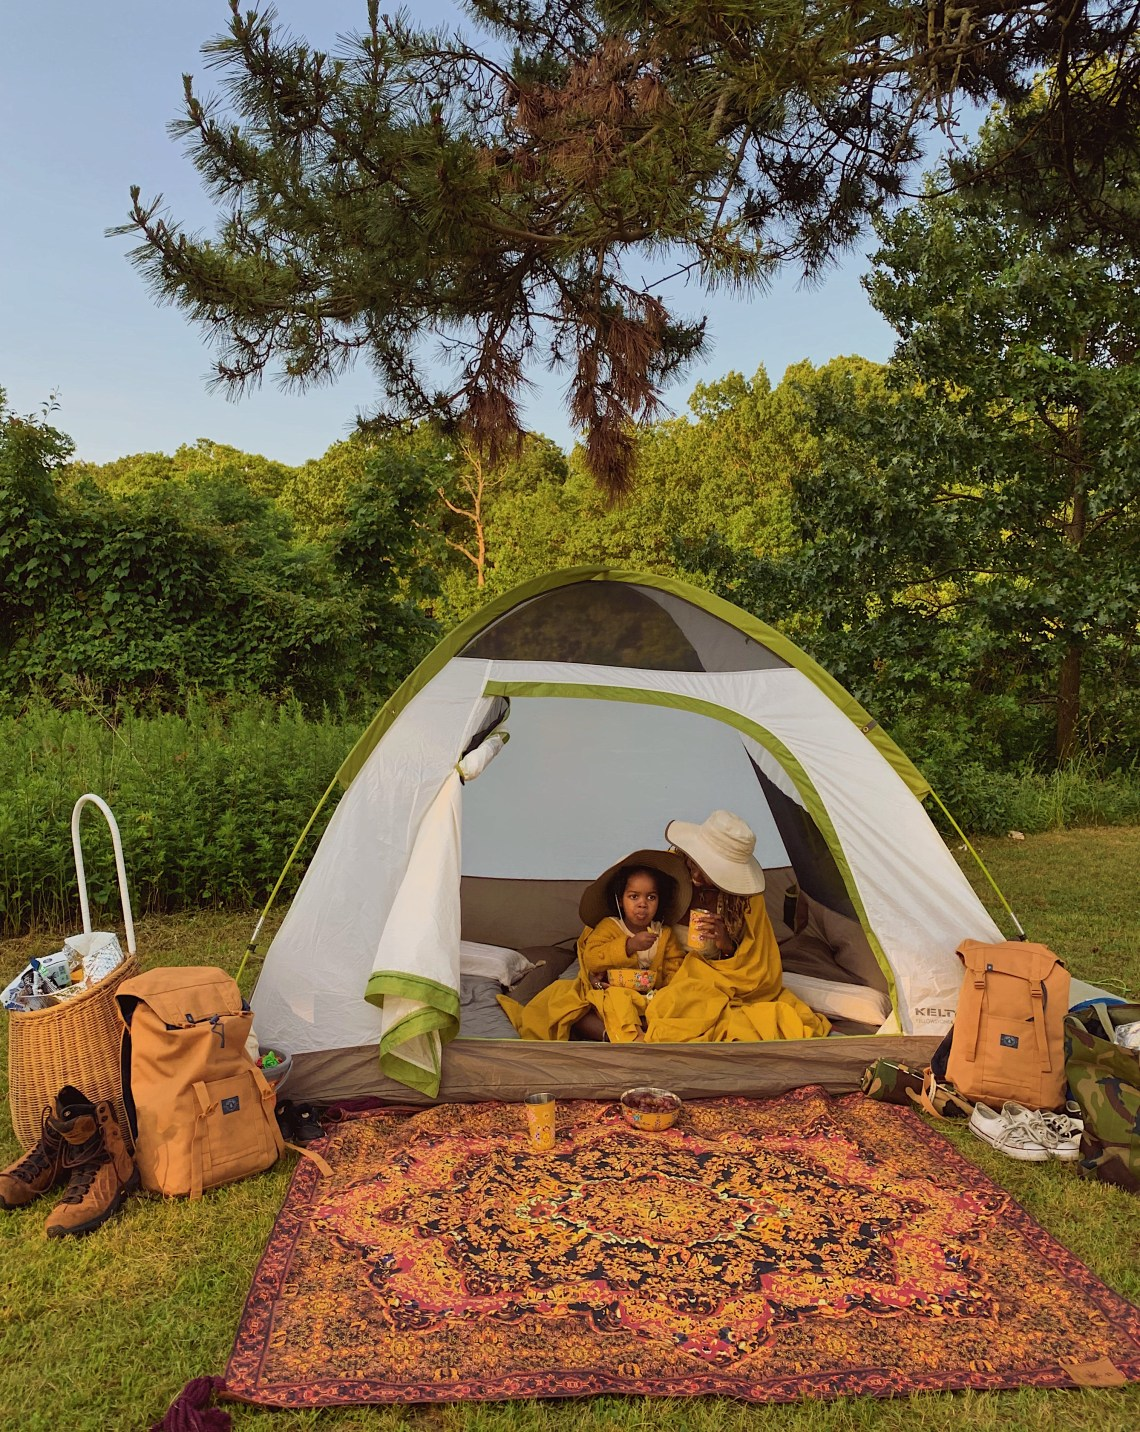 New York City Kids |5 places for Camping with Toddlers